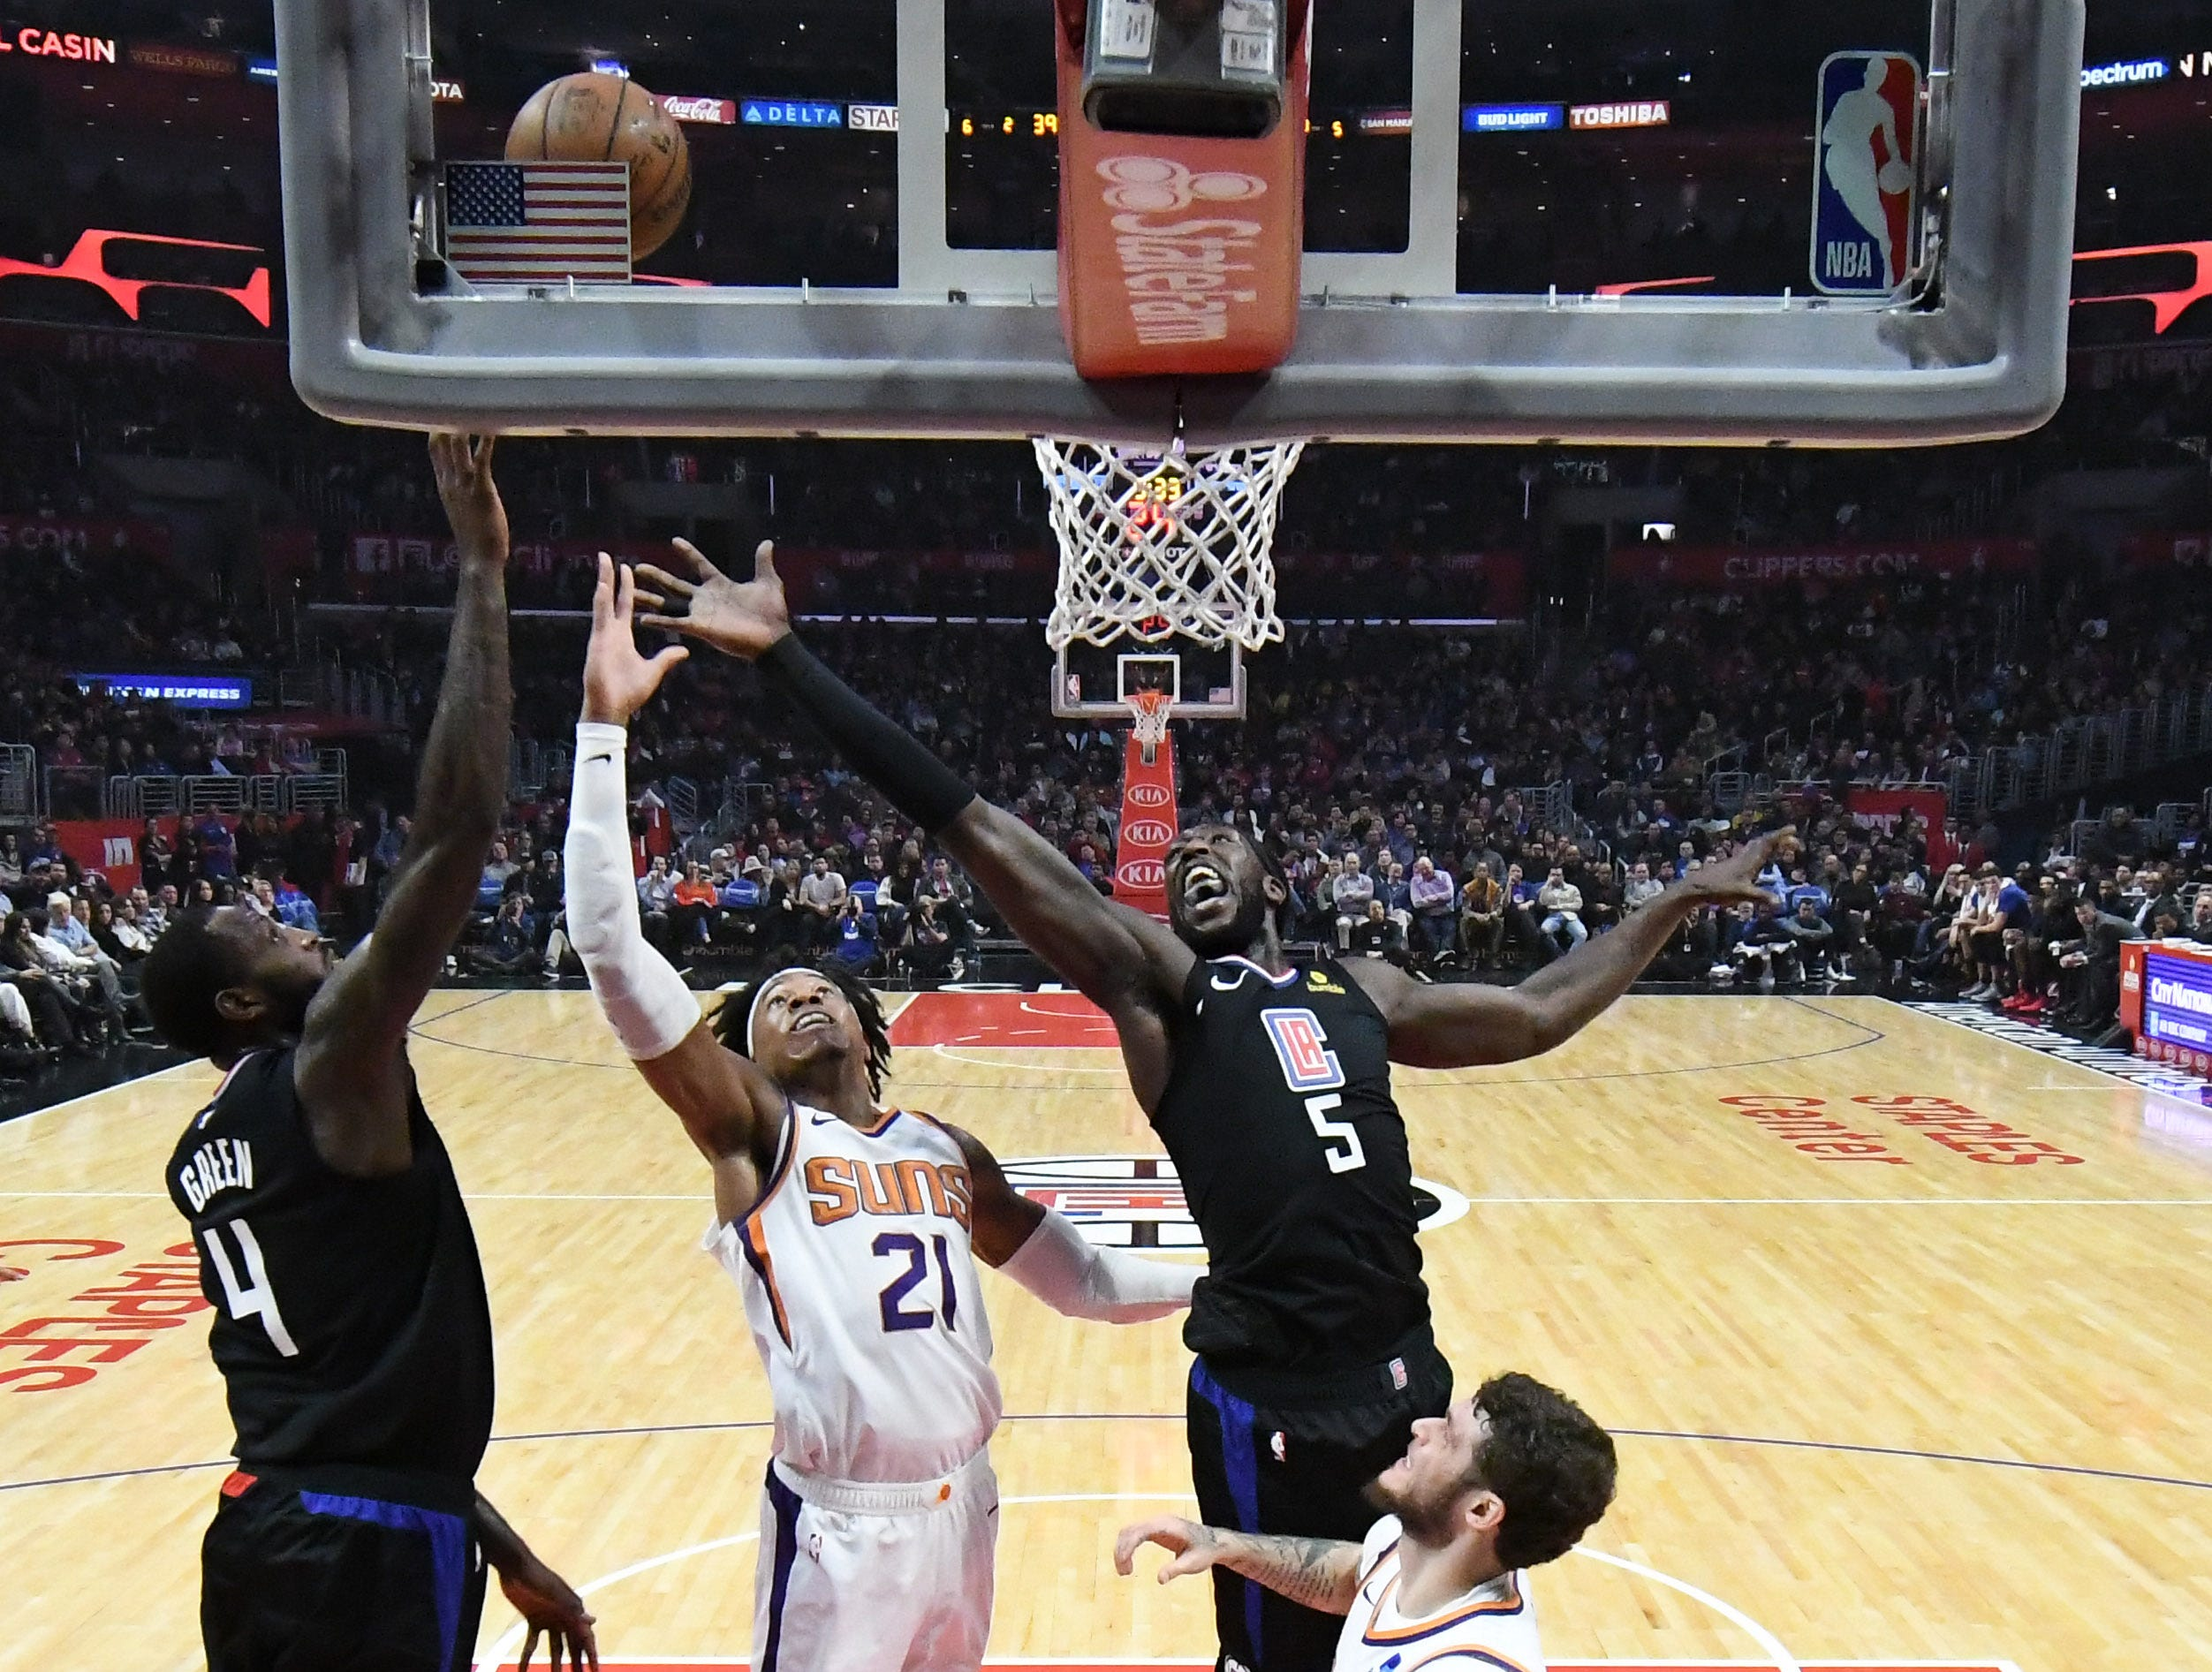 Feb 13, 2019; Los Angeles, CA, USA; Phoenix Suns forward Richaun Holmes (21) shoots between LA Clippers forward Montrezl Harrell (5) and forward JaMychal Green (4) in the first half at Staples Center. Mandatory Credit: Richard Mackson-USA TODAY Sports